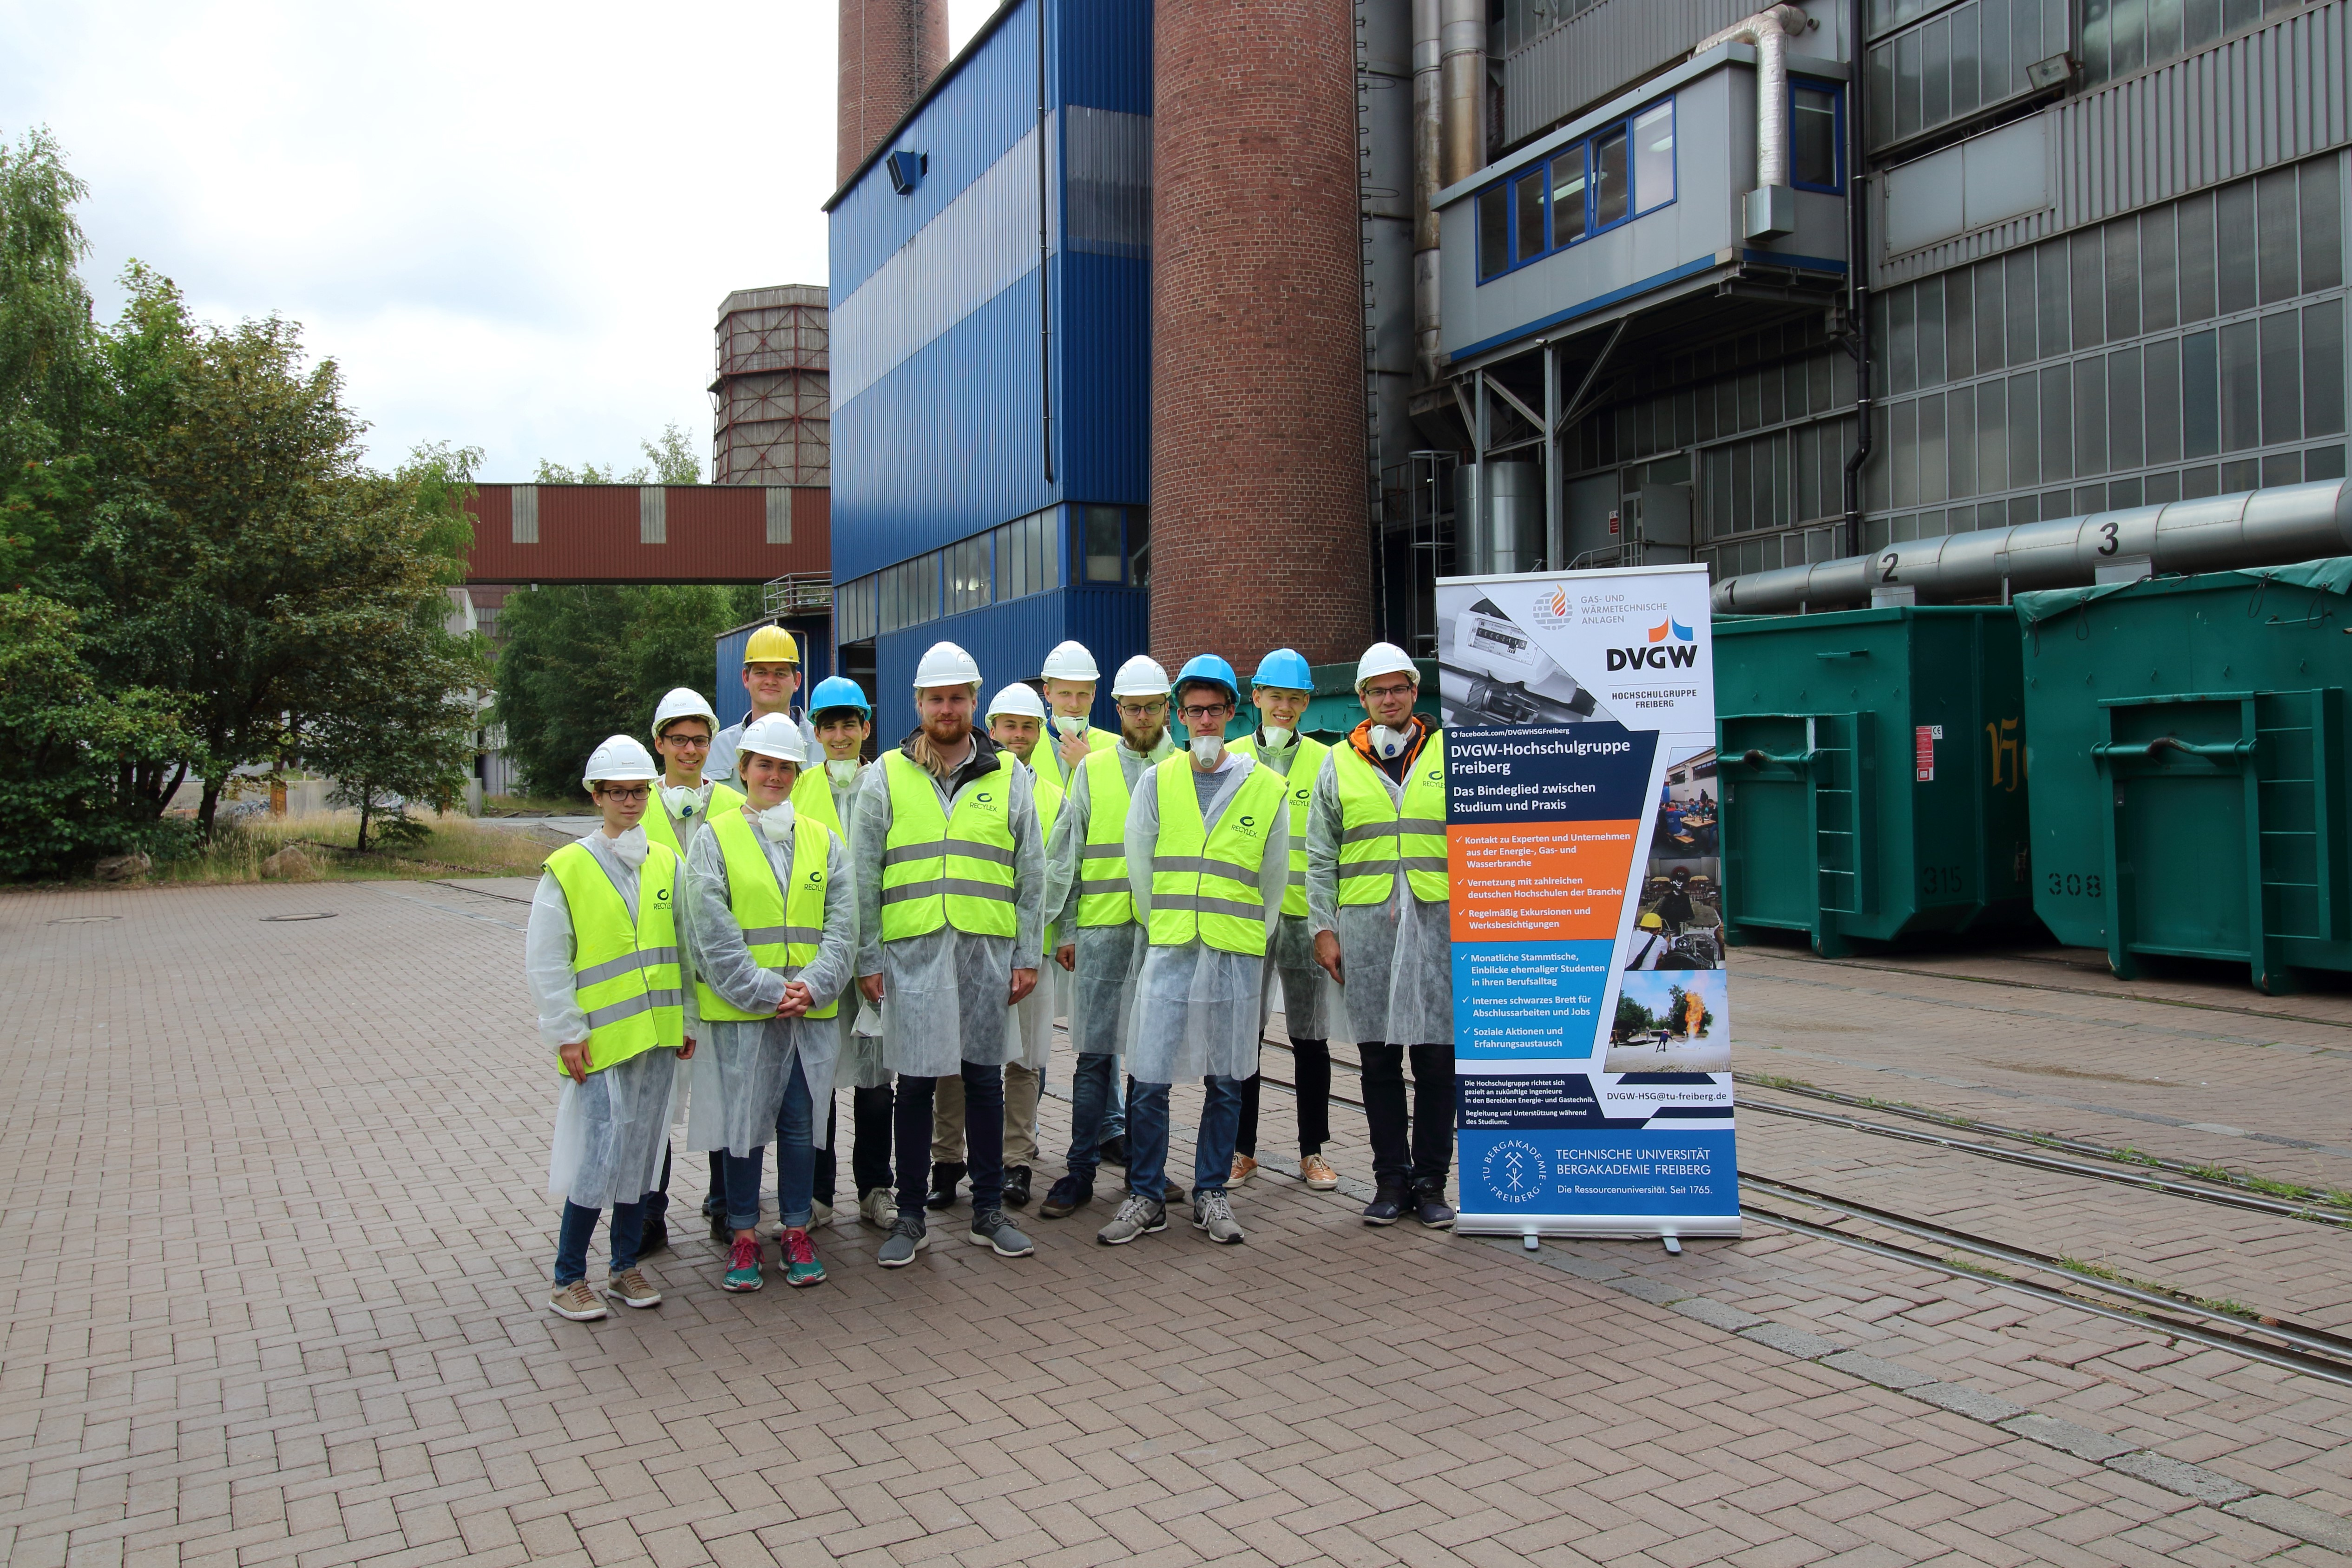 Students from the Freiberg University of Mining and Technology visit HZO